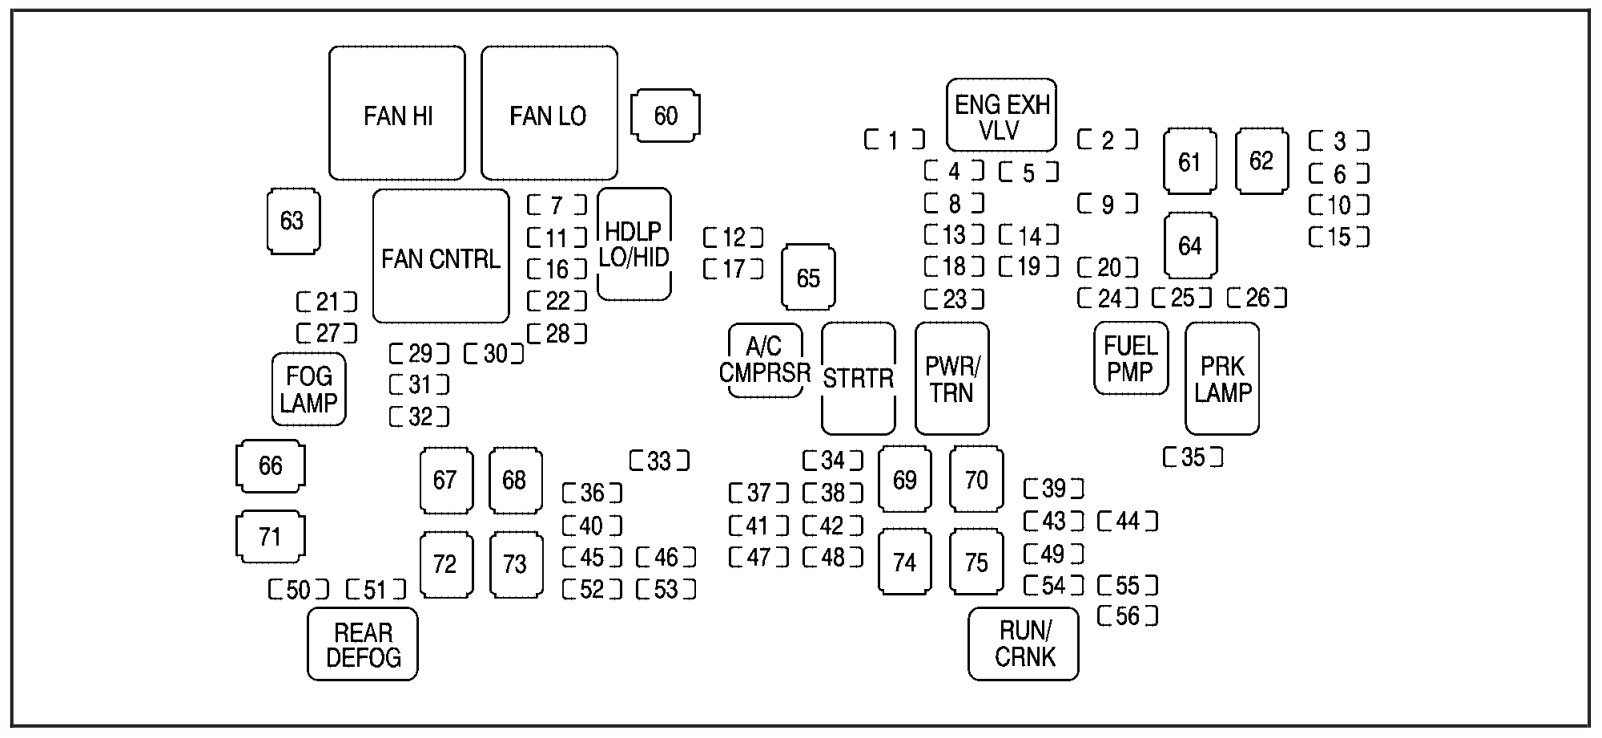 hight resolution of chevrolet tahoe 2007 fuse box diagram auto genius 2007 chevrolet tahoe fuse diagram 07 tahoe fuse diagram